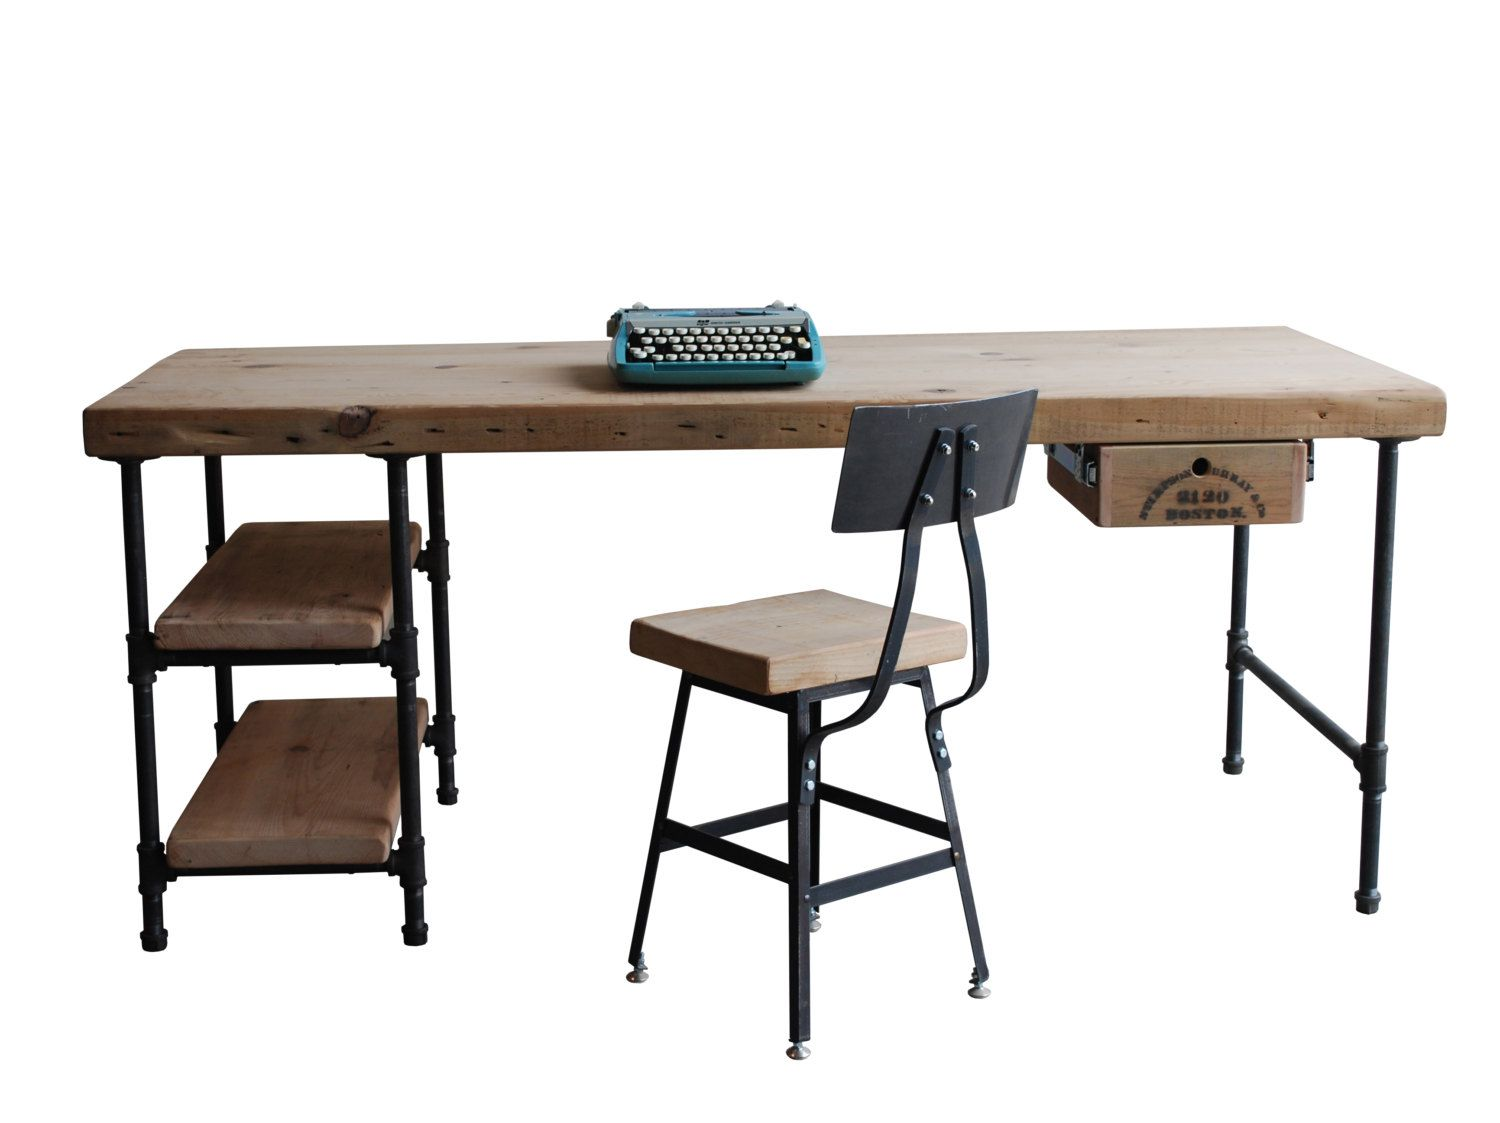 Industrial Modern Desk Made Of Reclaimed Wood Custom Made For You. We Can  Even Make You A Standing Desk! Choose Steel Legs In Modern Industrial